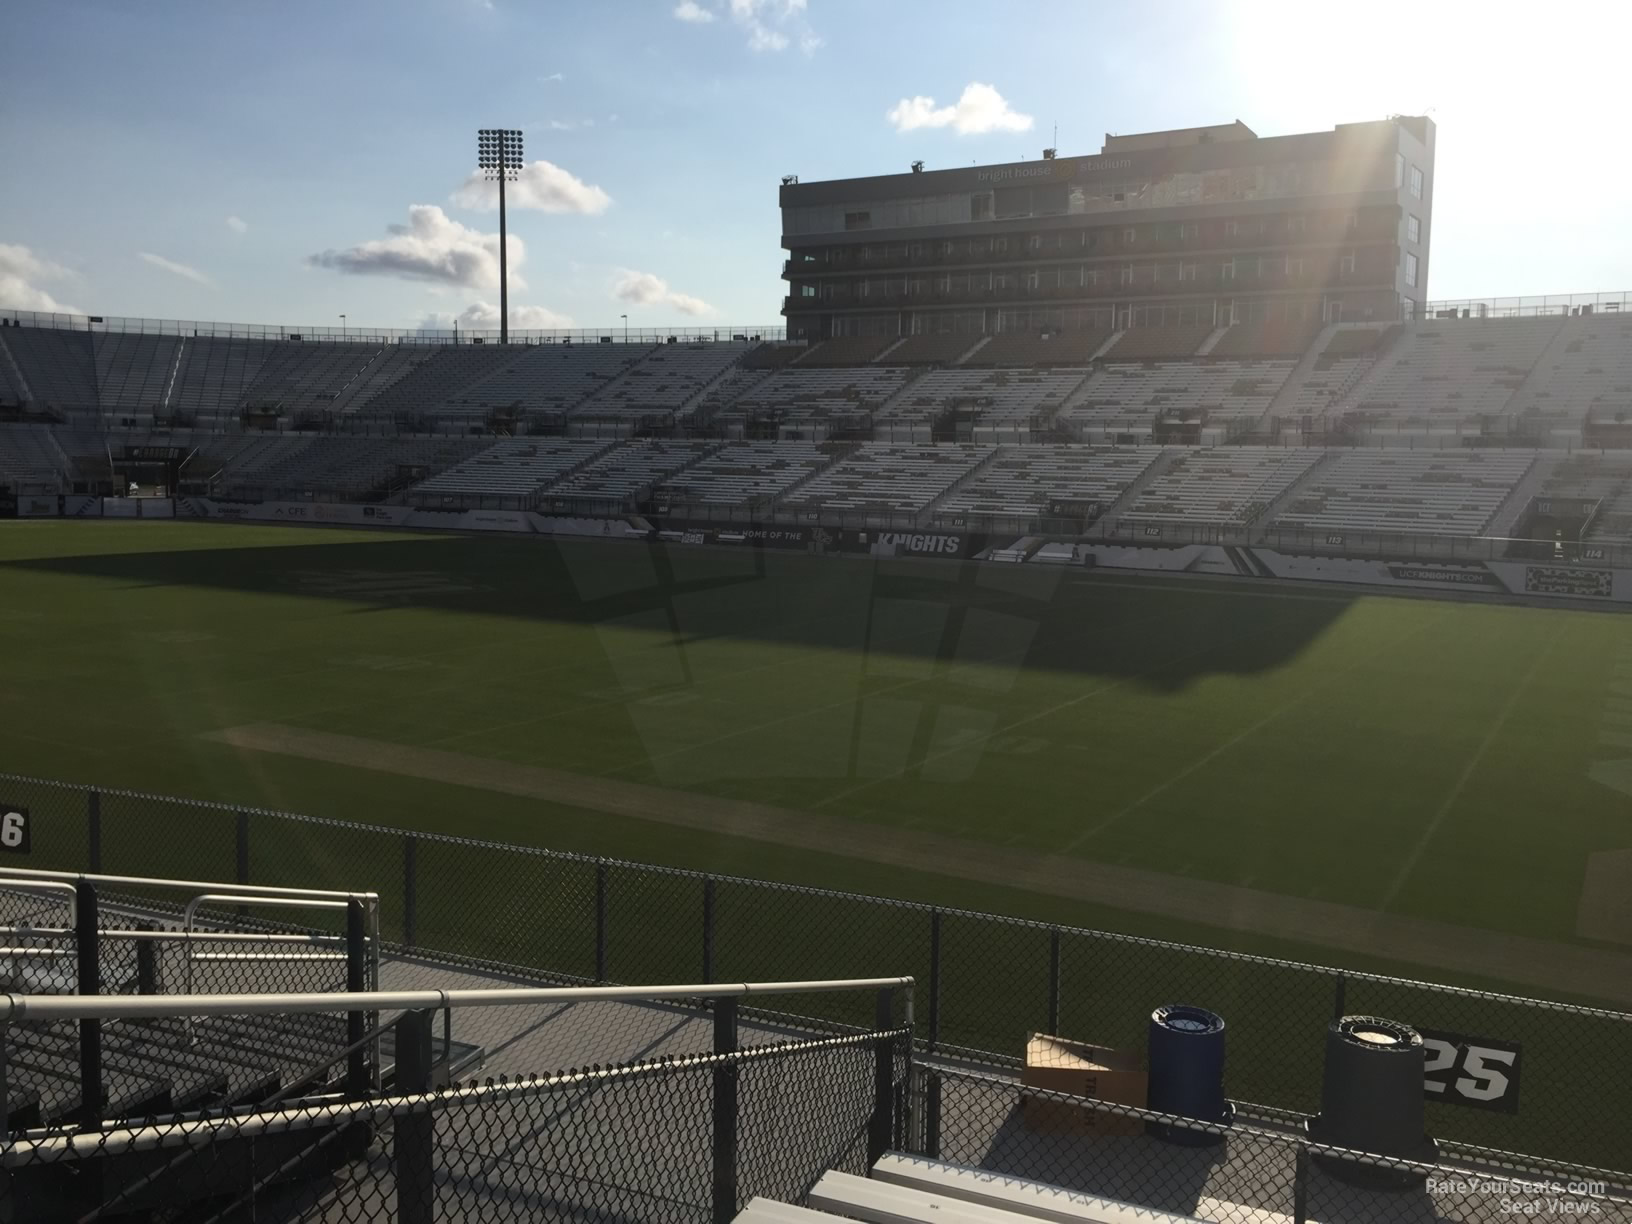 Bright house networks stadium ucf knights tickets for Right house